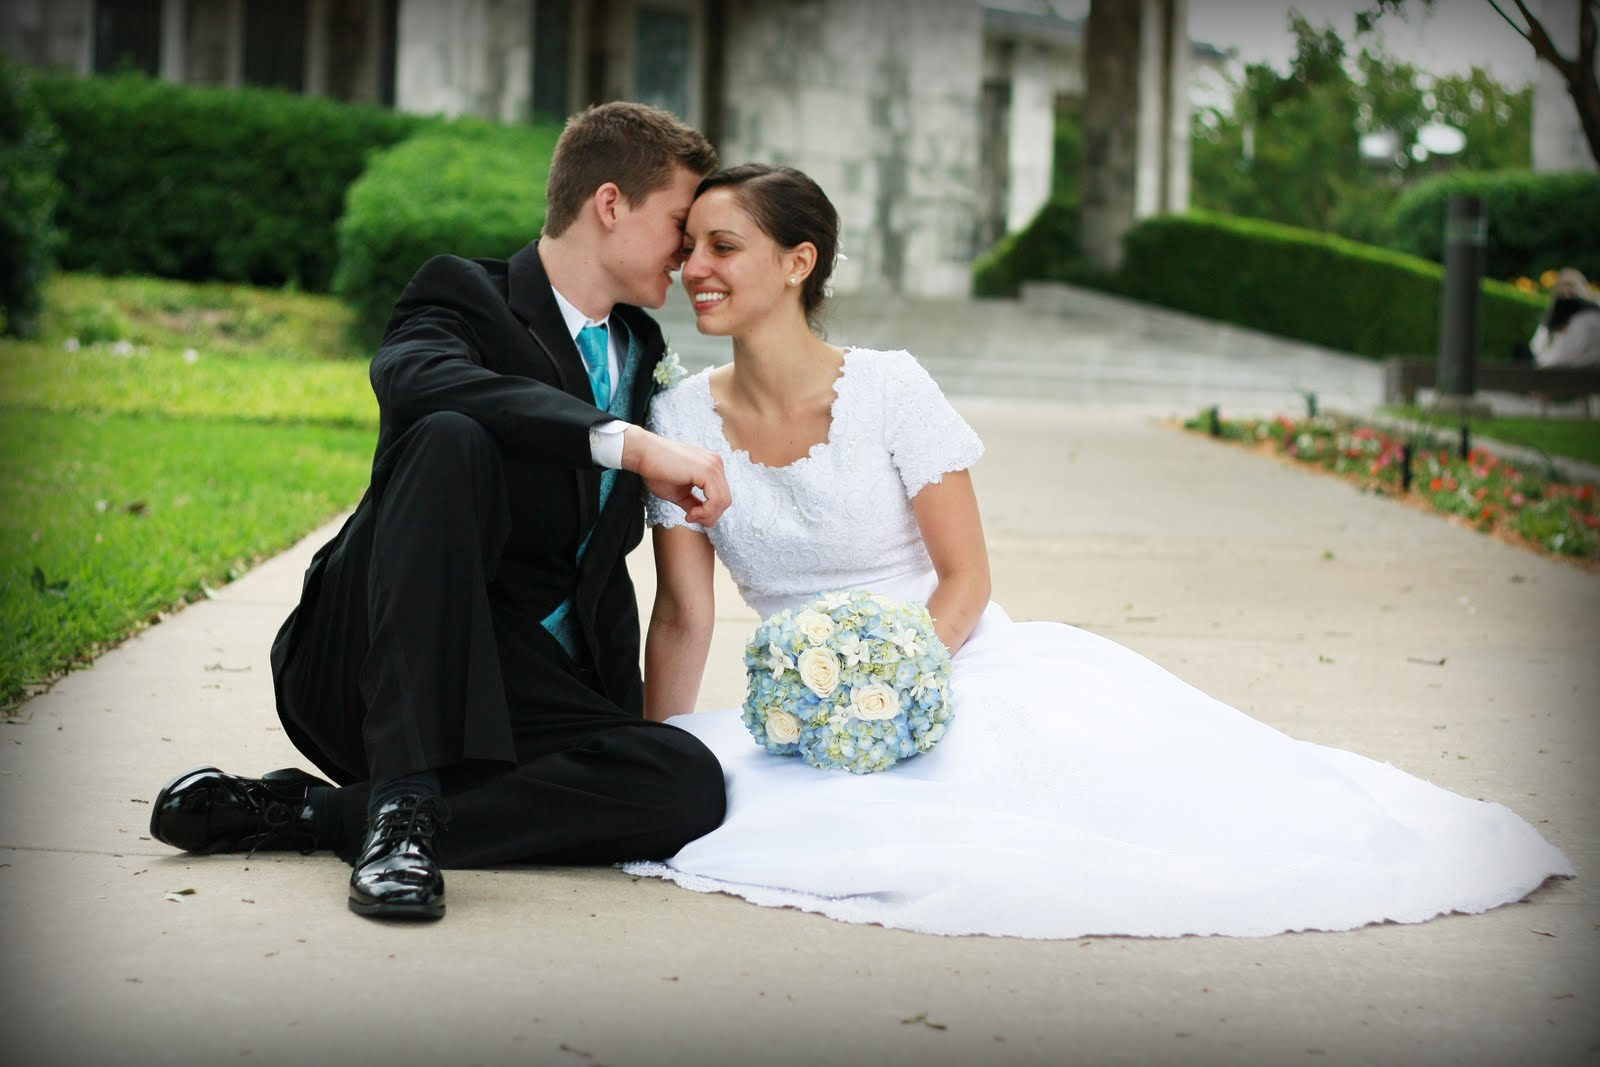 compare and contrast essay on weddings